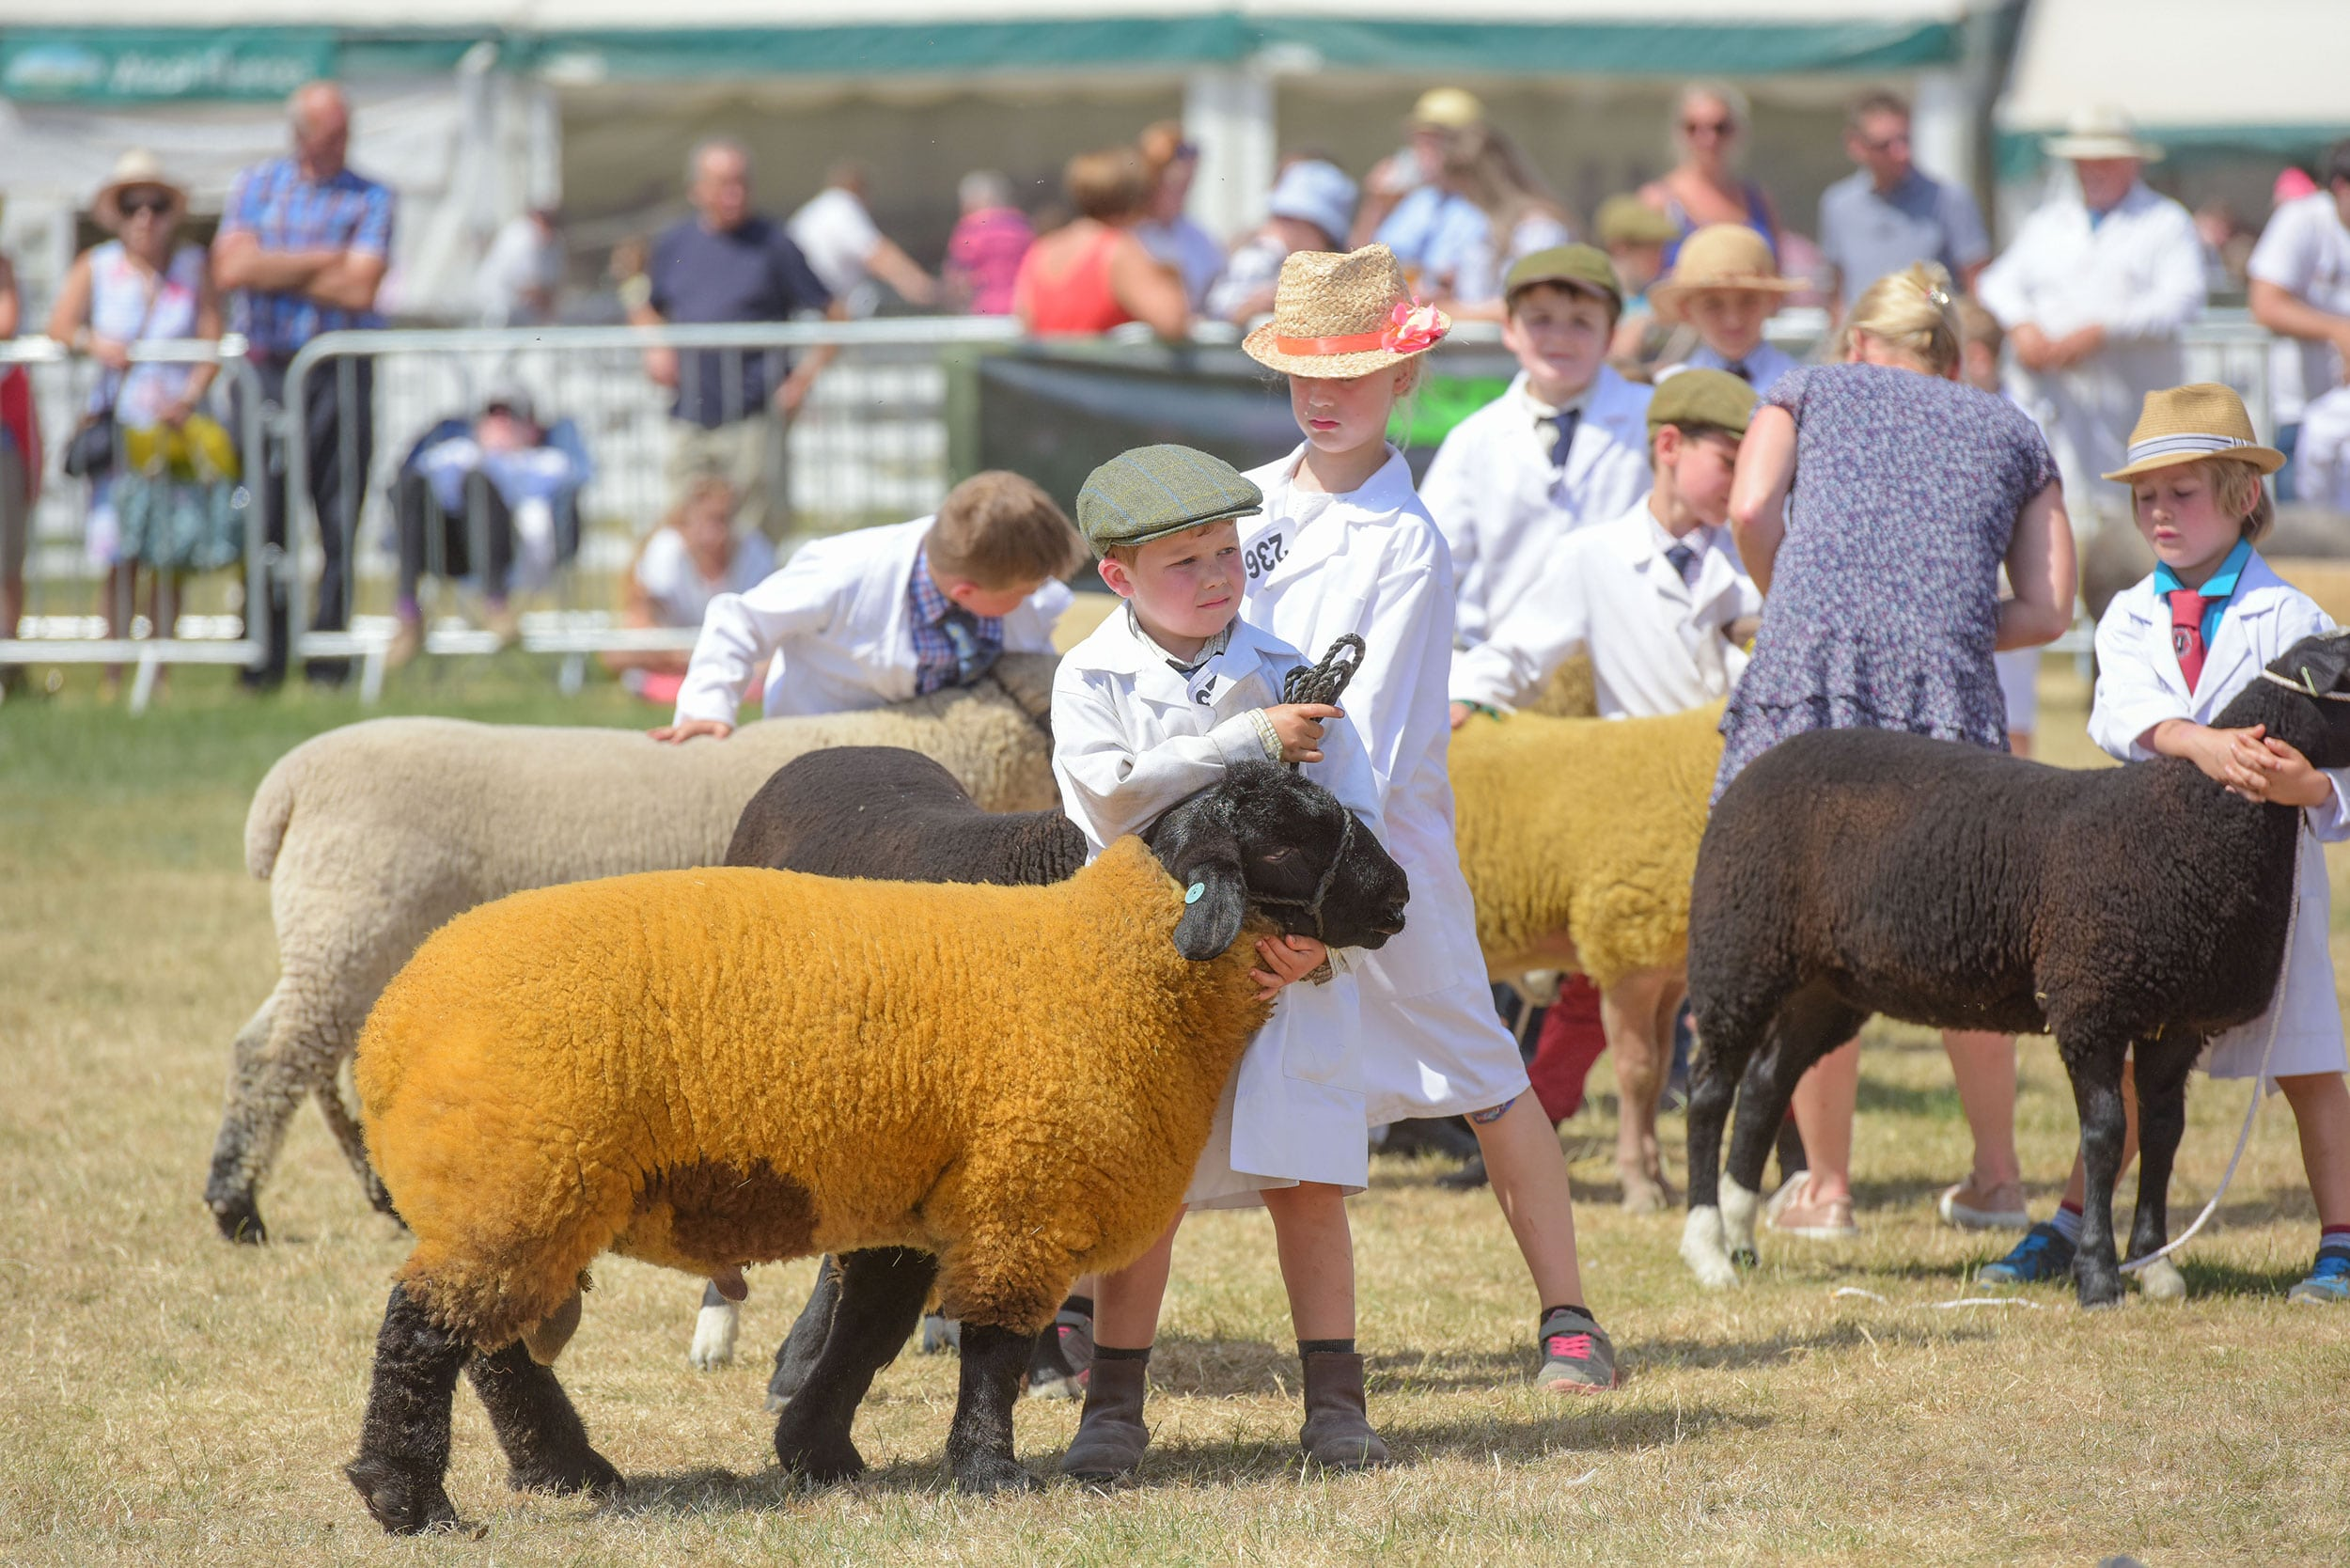 Primary School visits to the Great Yorkshire Show